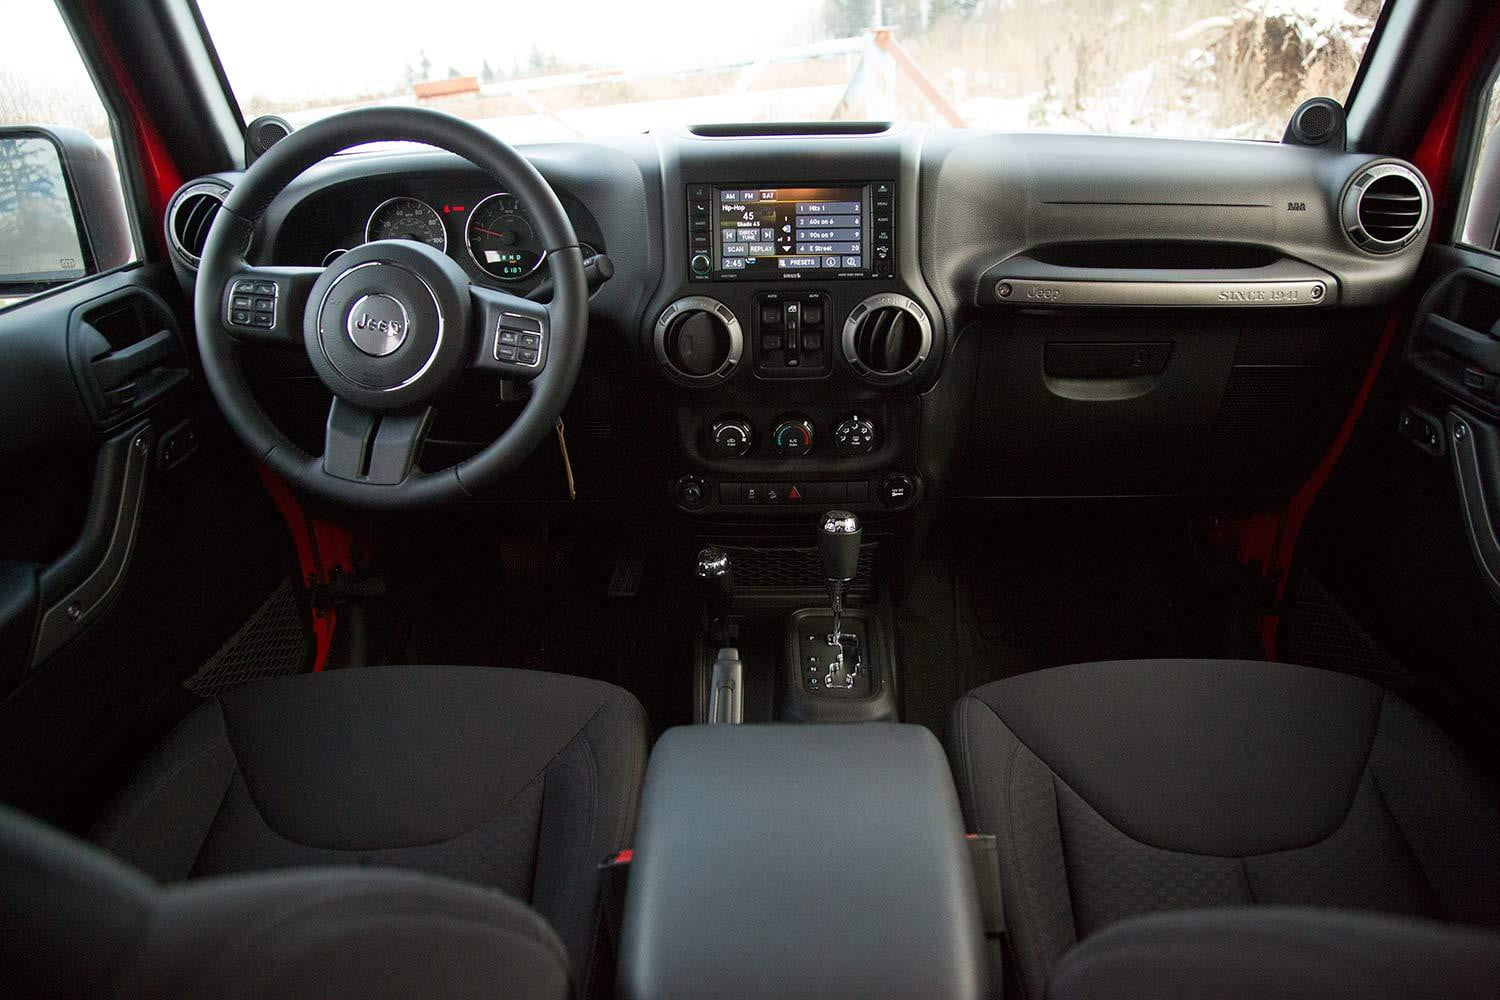 2015 jeep wrangler unlimited review digital trends for Jeep wrangler interior